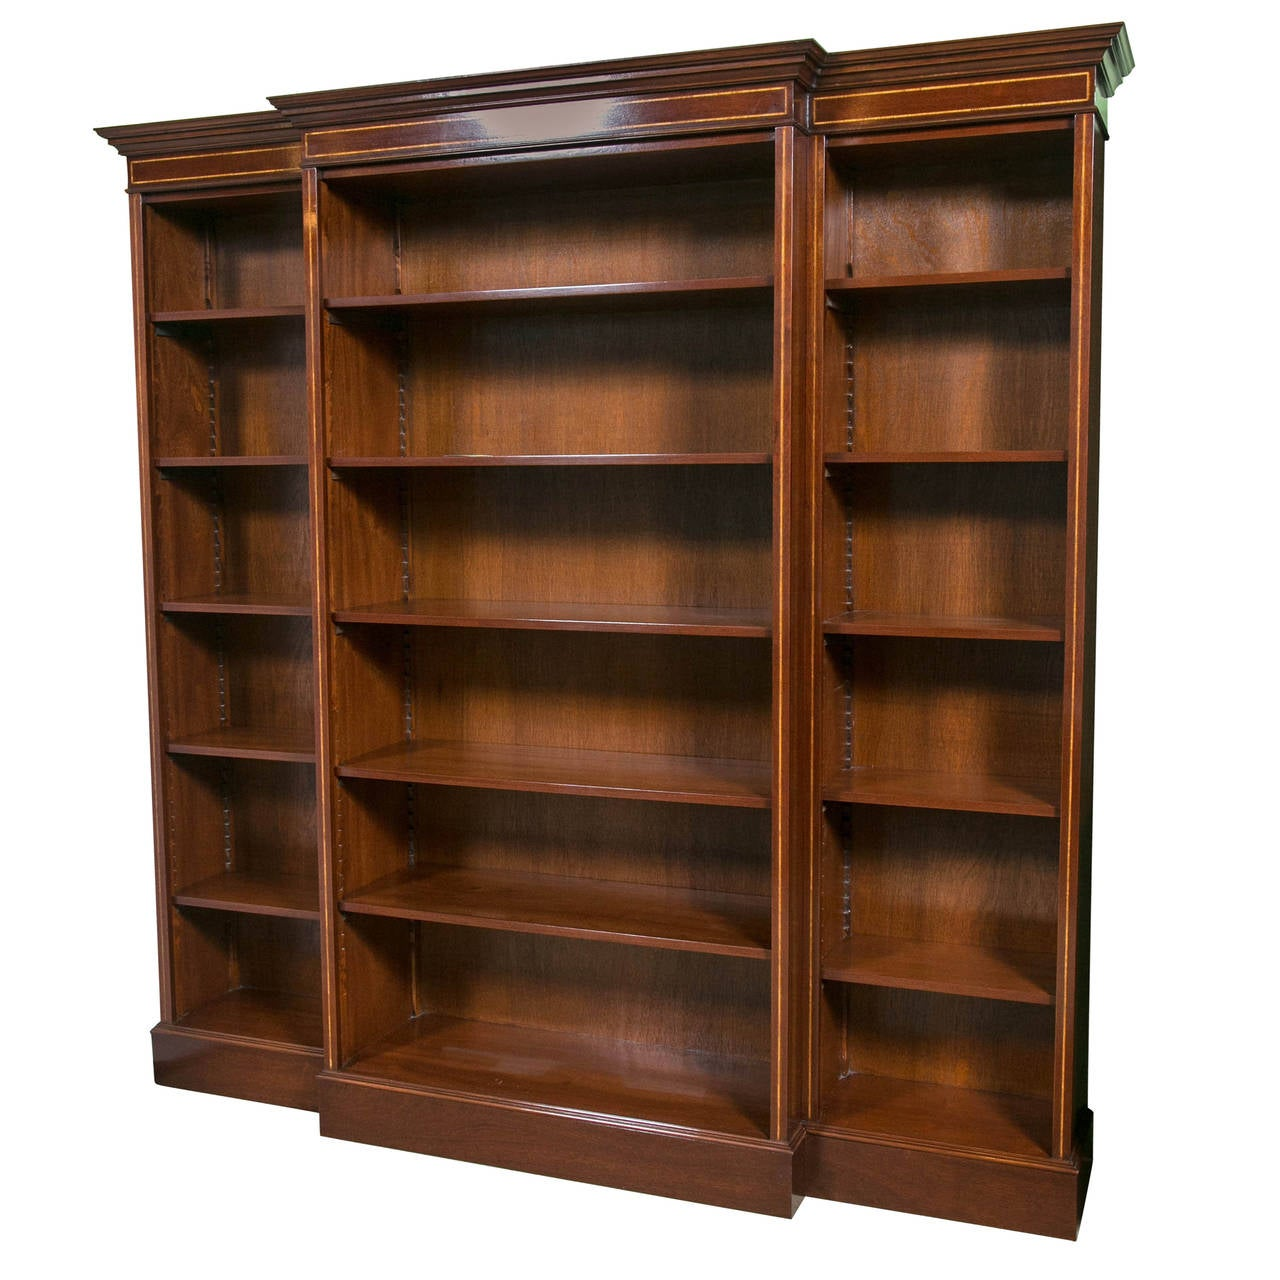 Big bookshelf th century style large bookcase at